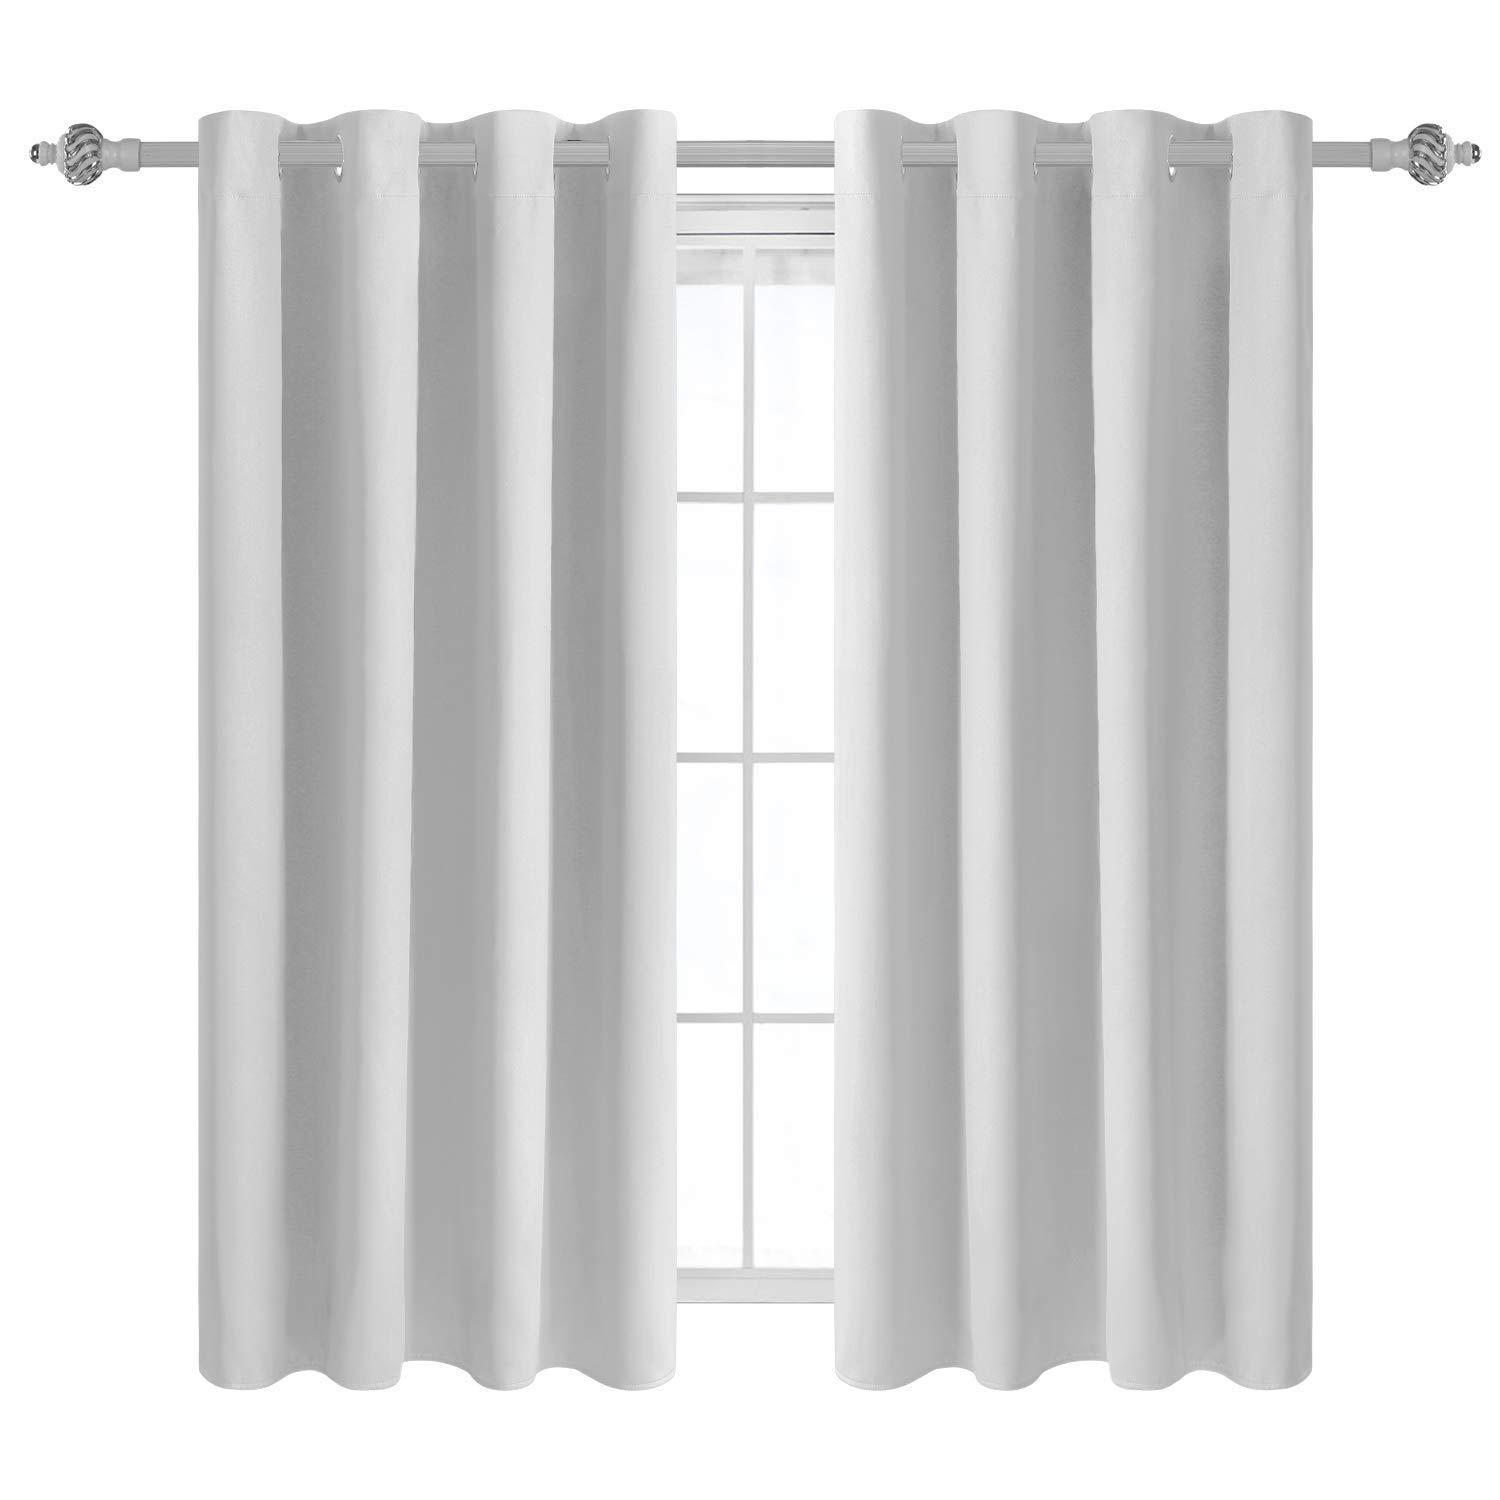 55 X 63 Inch Machine Washable By CASA DECORS Beige Window Curtains Set of 2 Panels Curtains for Living Room and Bedroom 100/% Cotton